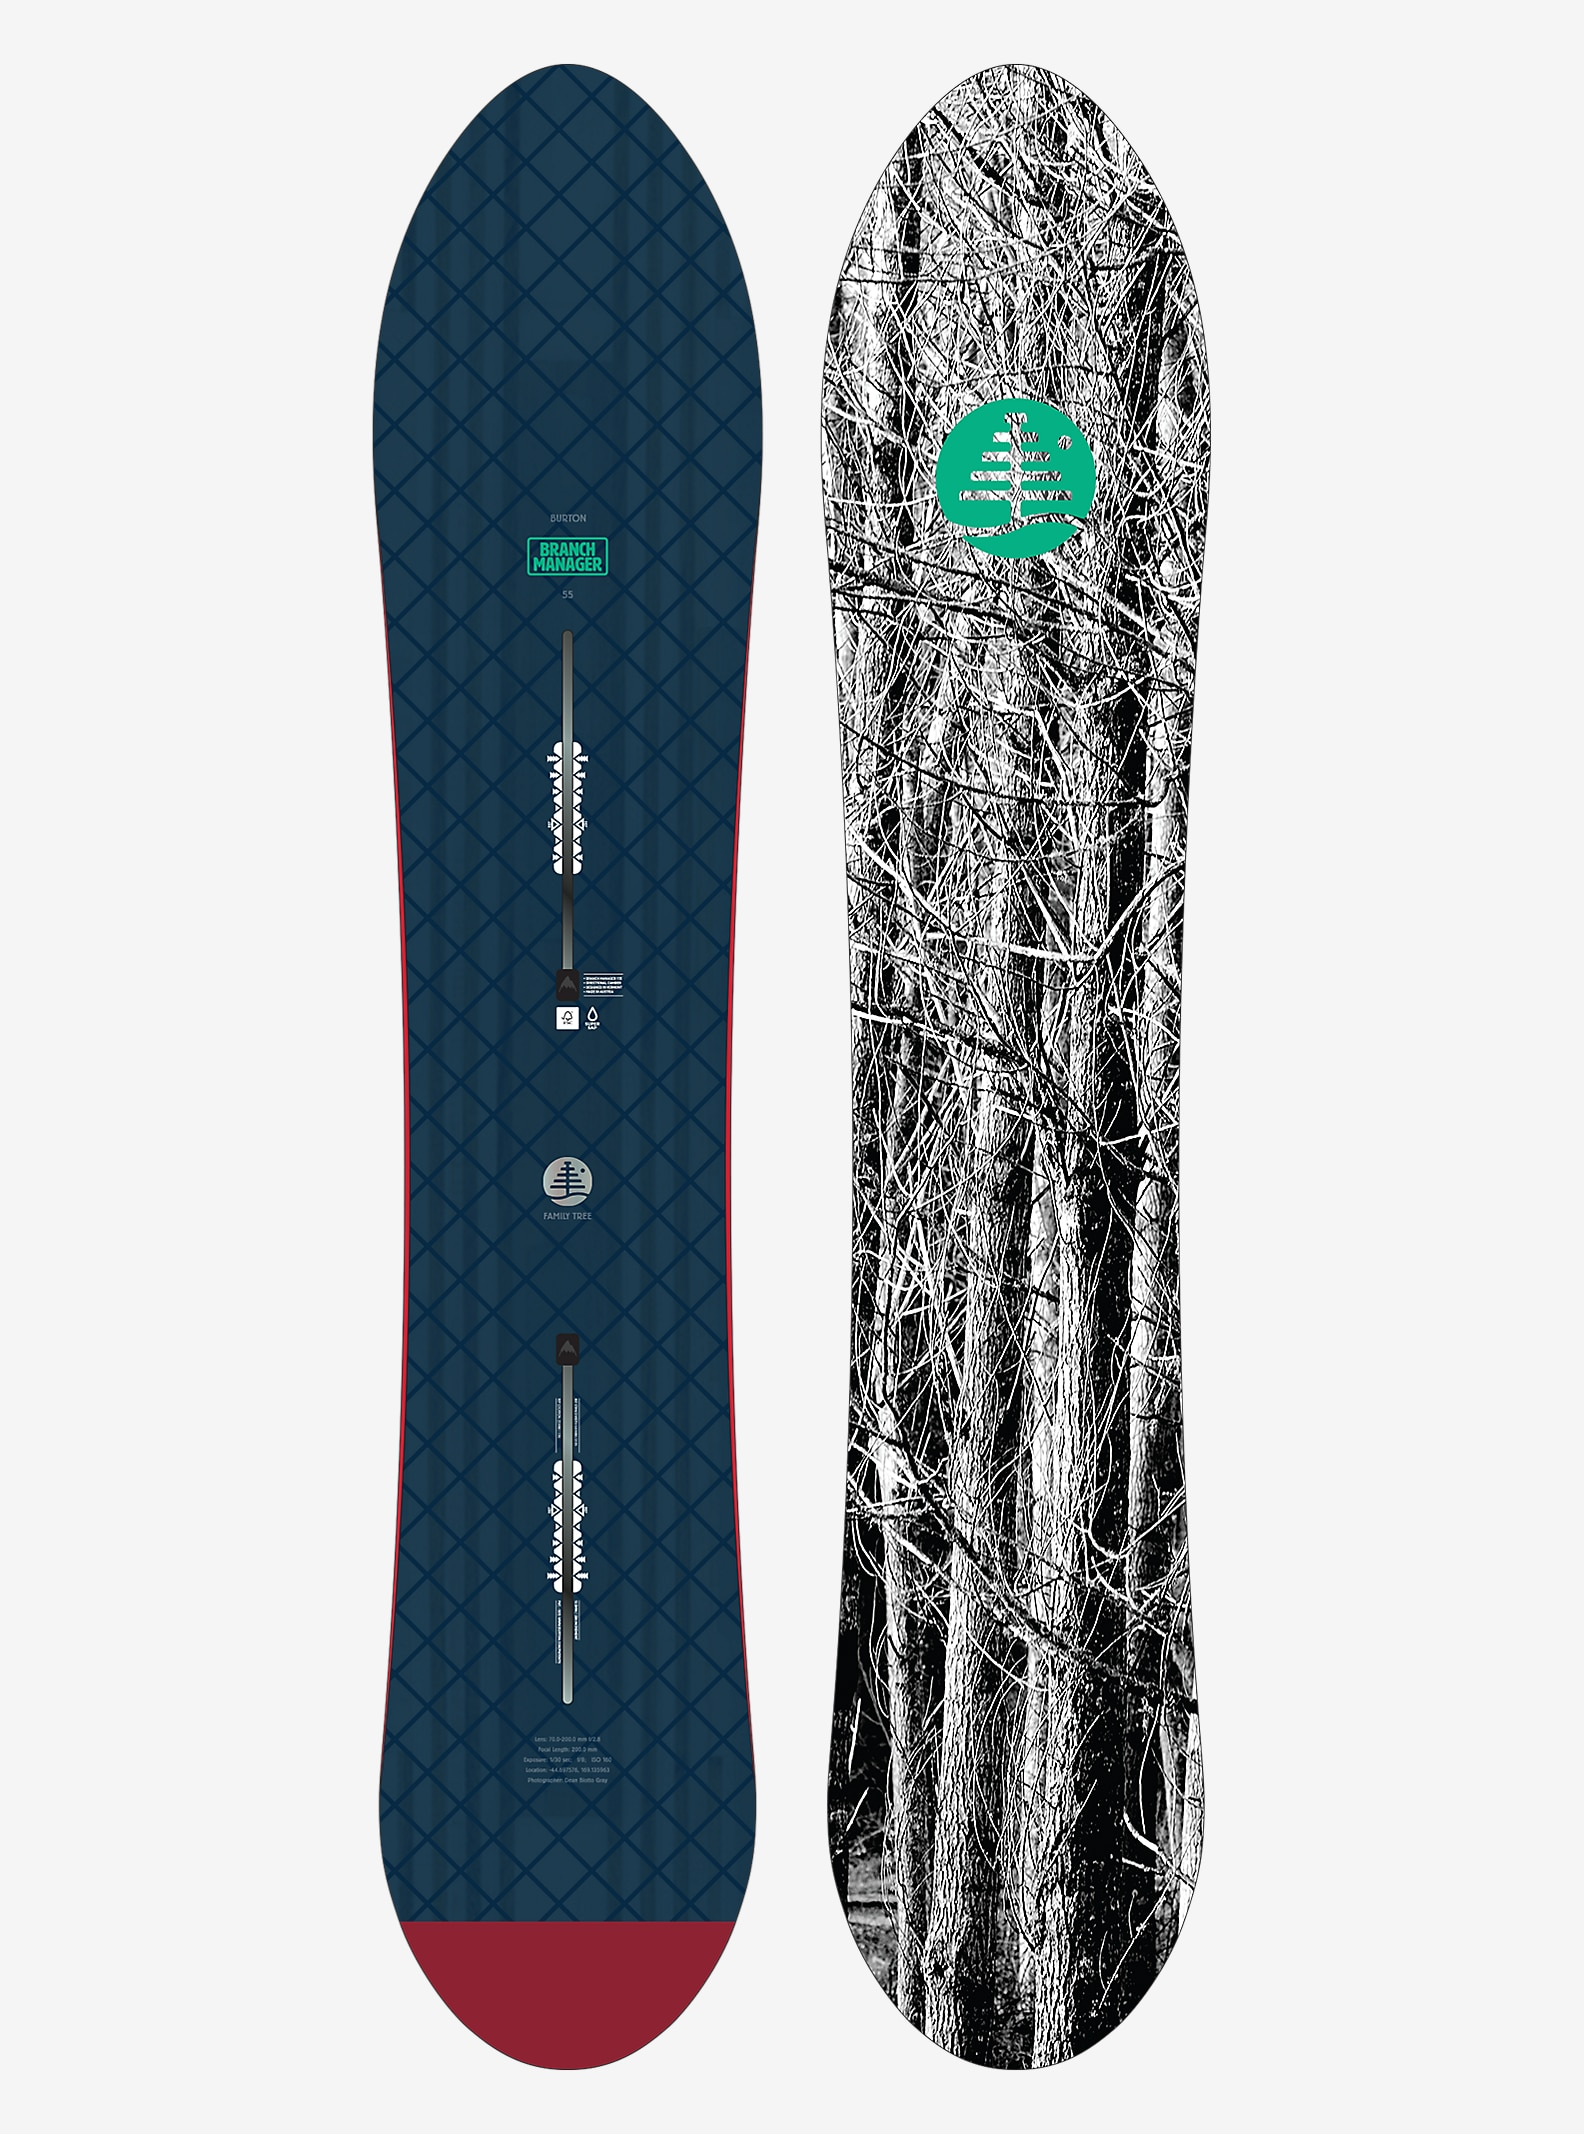 Burton Family Tree Branch Manager Snowboard shown in 155